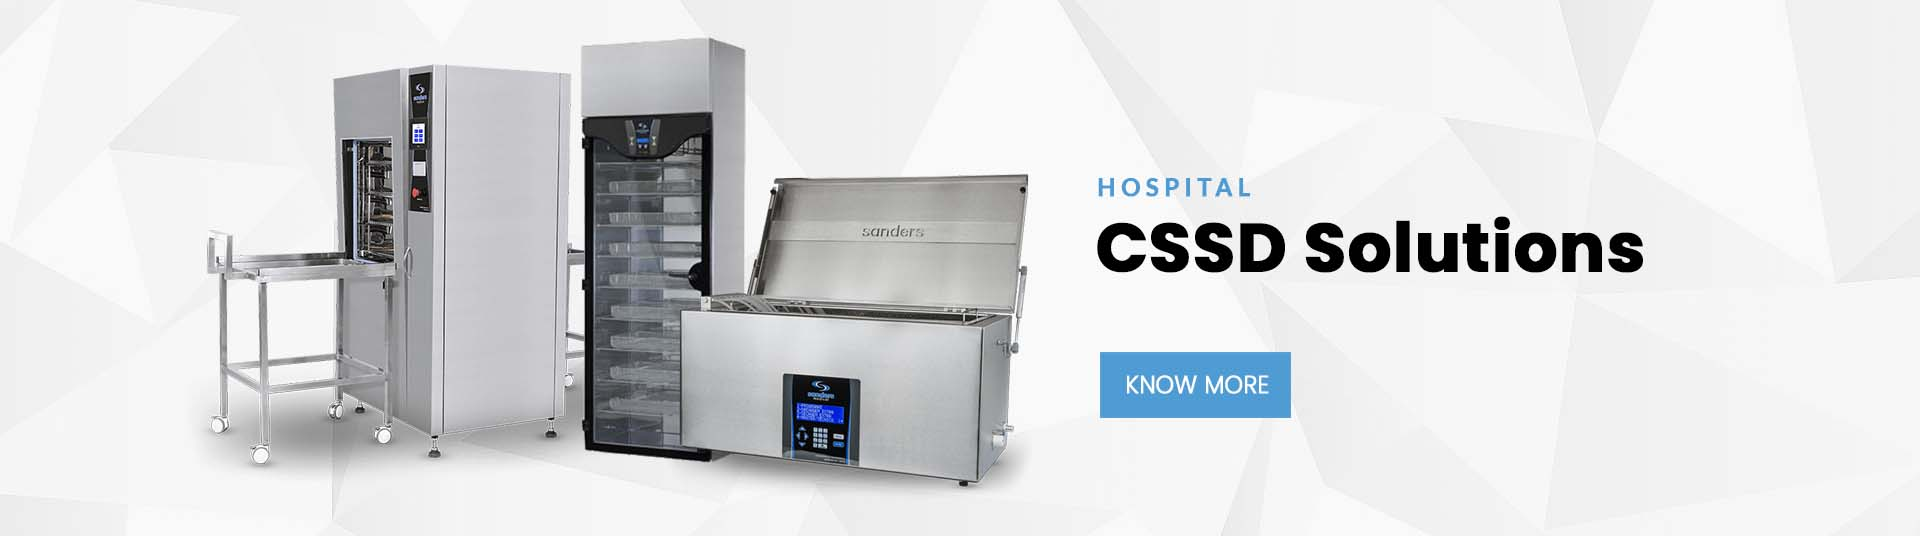 CSSD Solutions